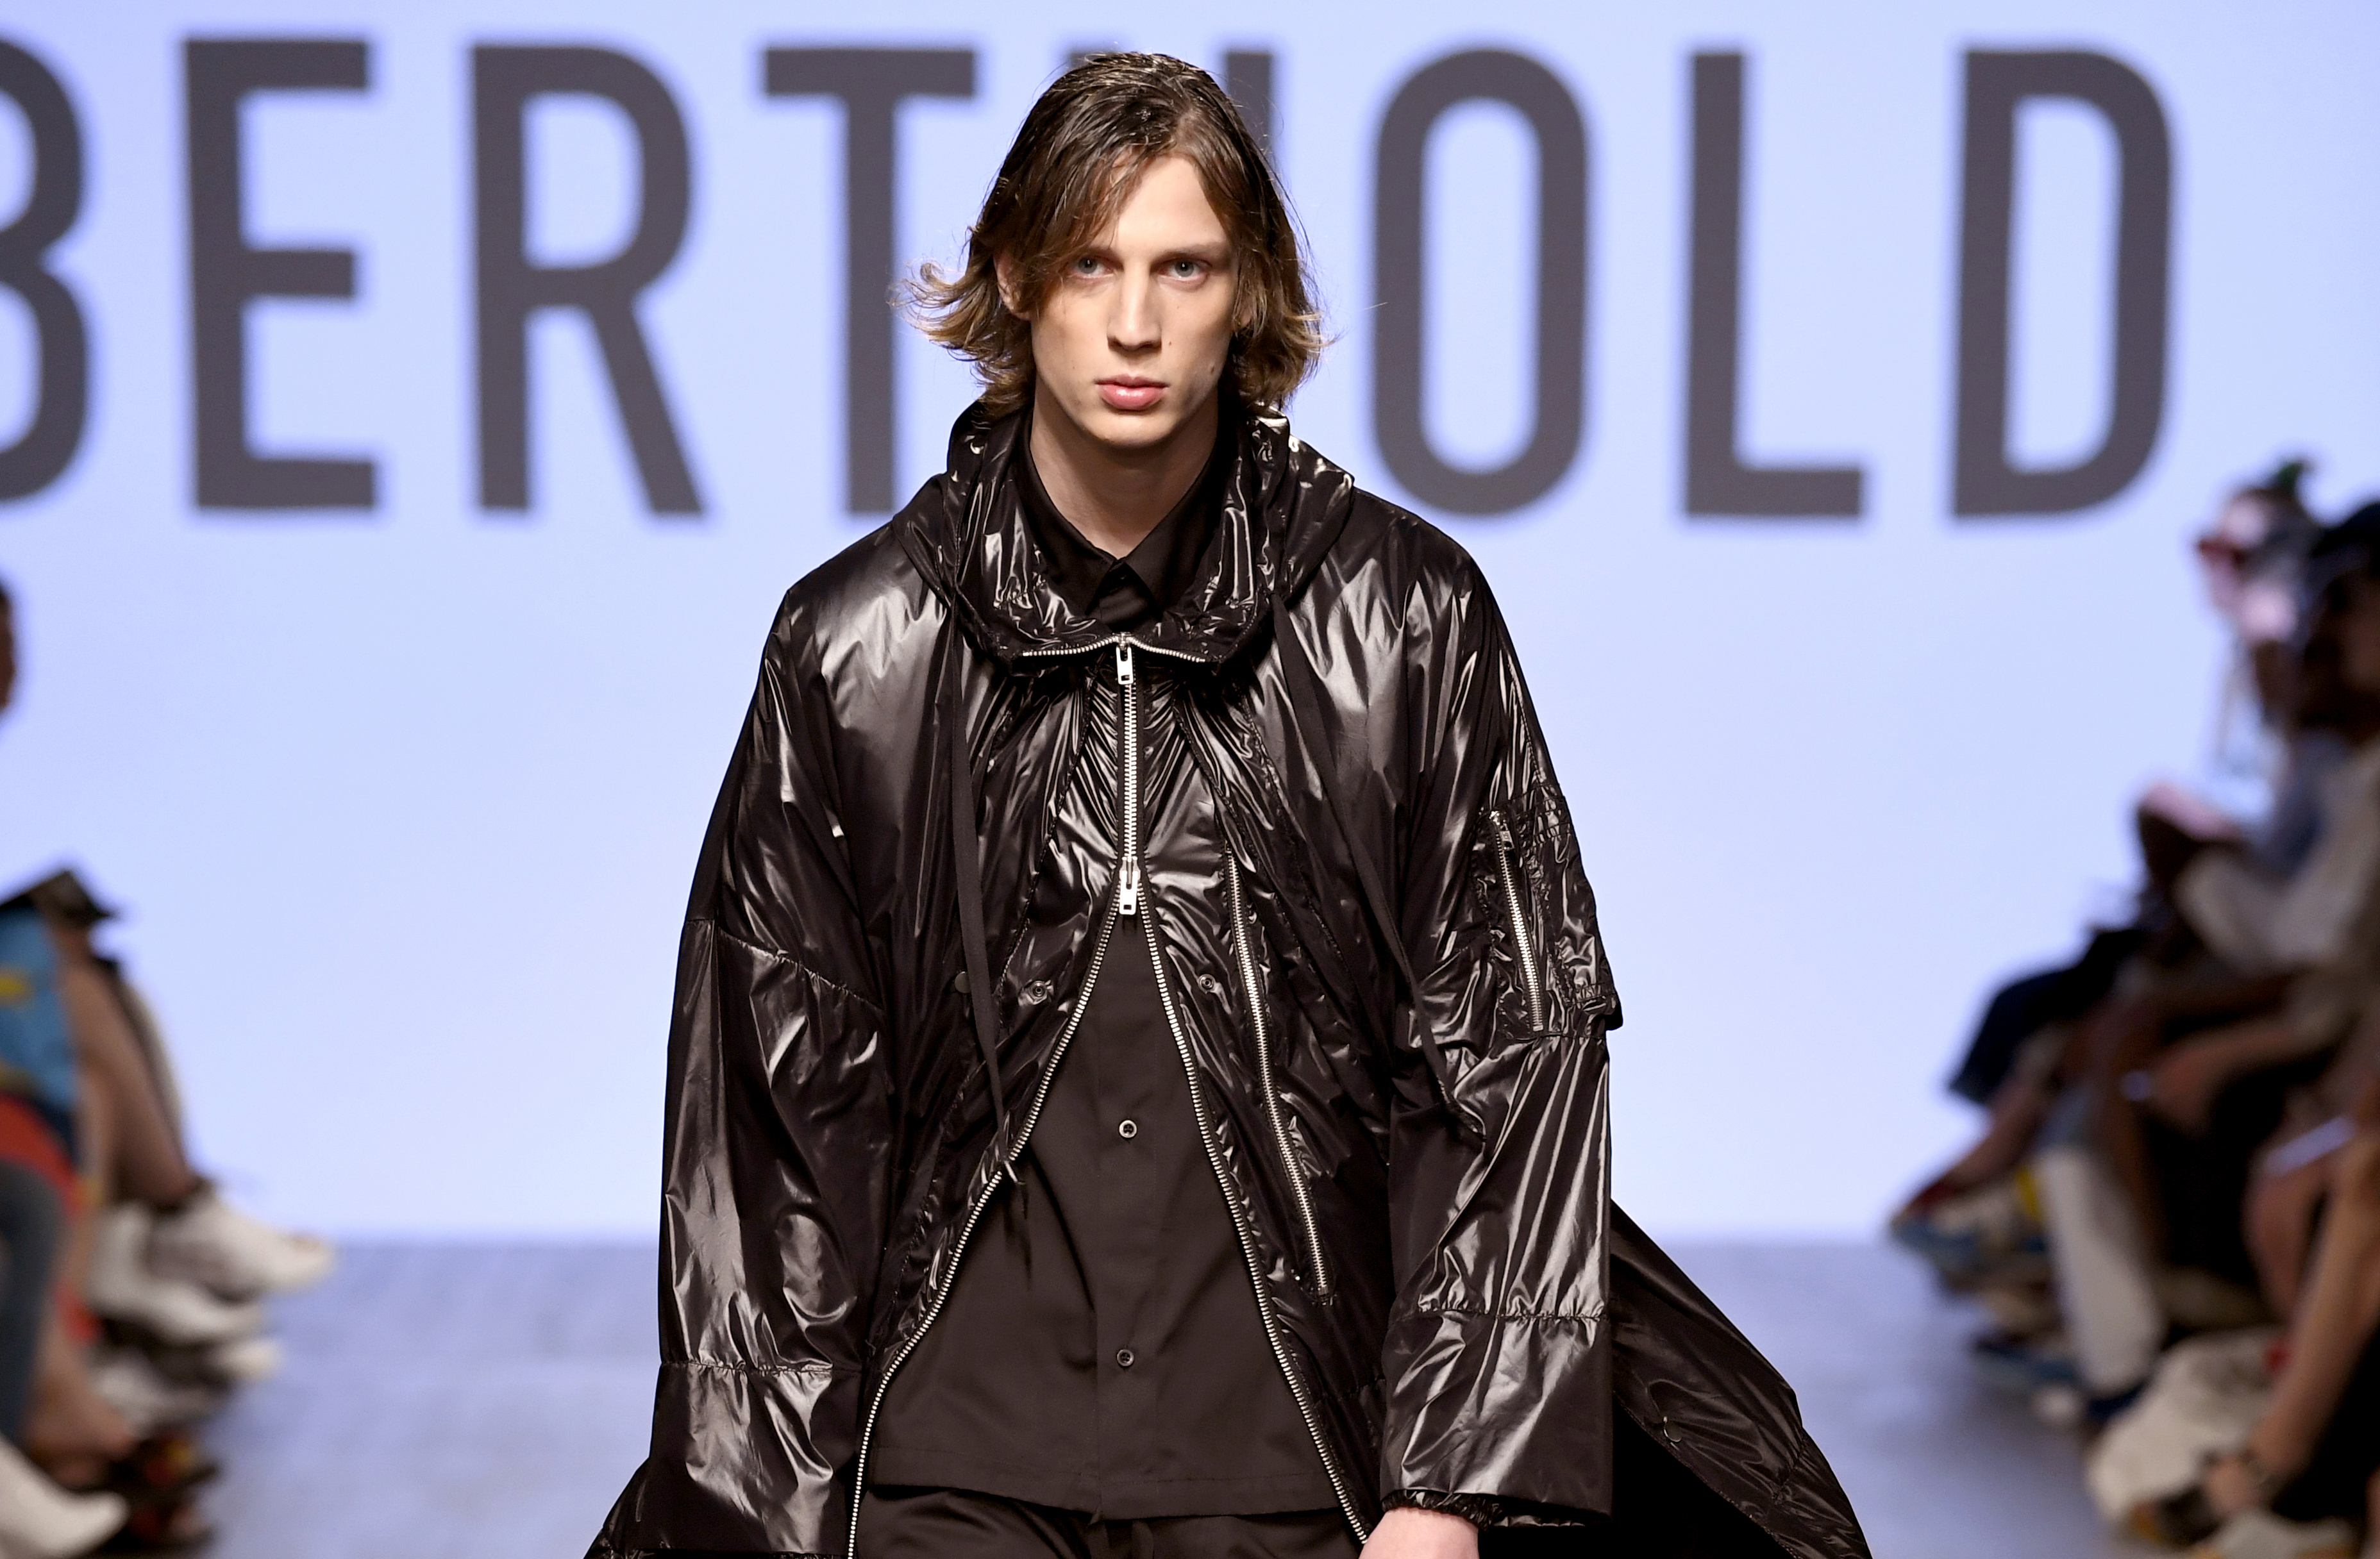 Berthold Spring Summer 2019  London Fashion Week   Fashion Week Online         2019  London Fashion Week  London      Men s